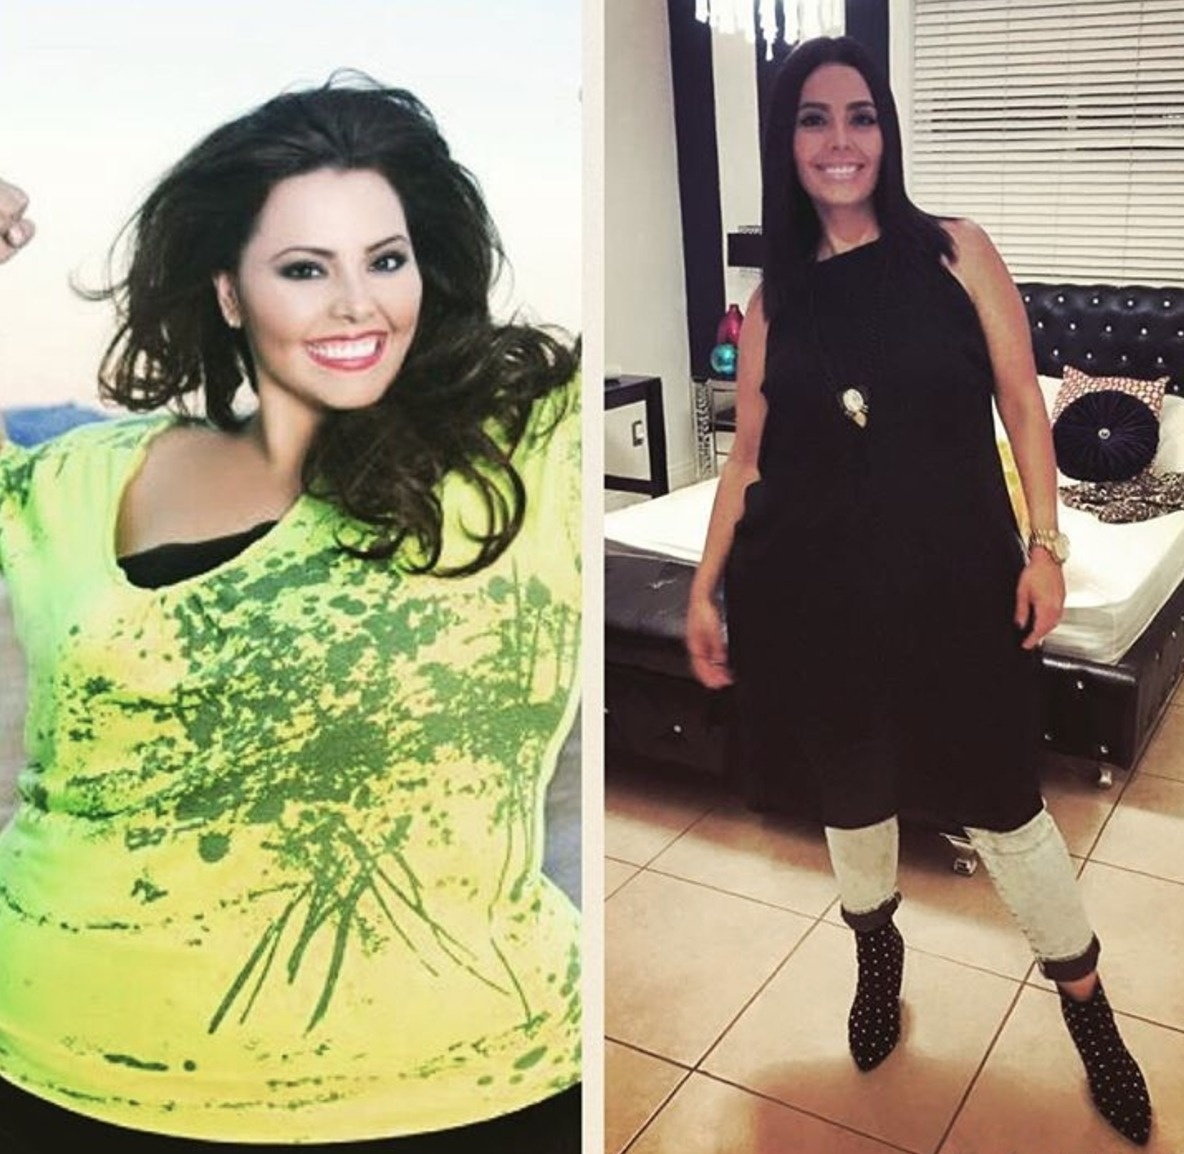 #20. The solution to weight loss can be as simple as maintaining a daily routine just like she did. - 23 Inspirational Before/After Photos Of People Who Can Say 'I Did It.'